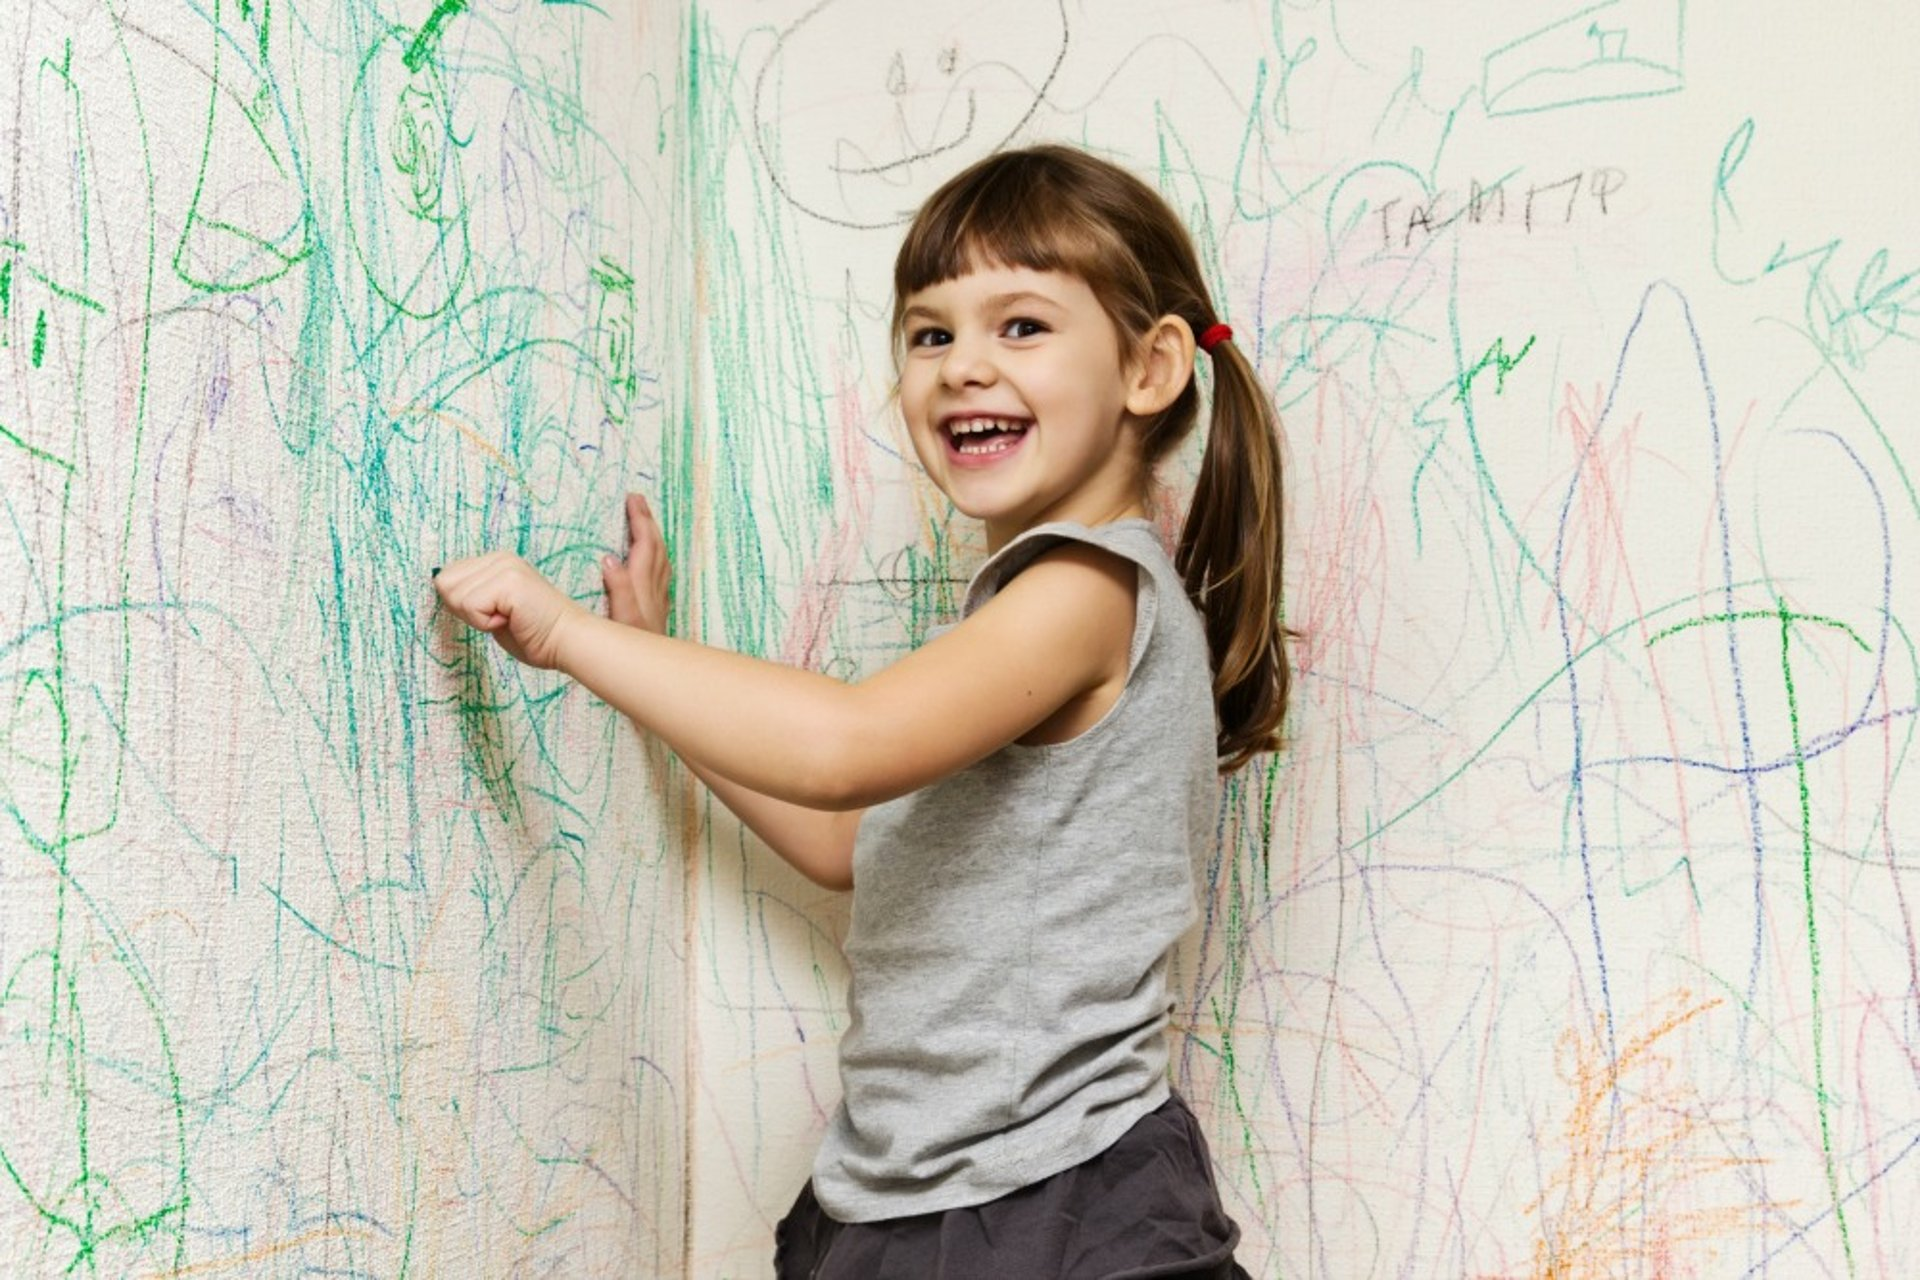 Girl drawing on wall with crayon